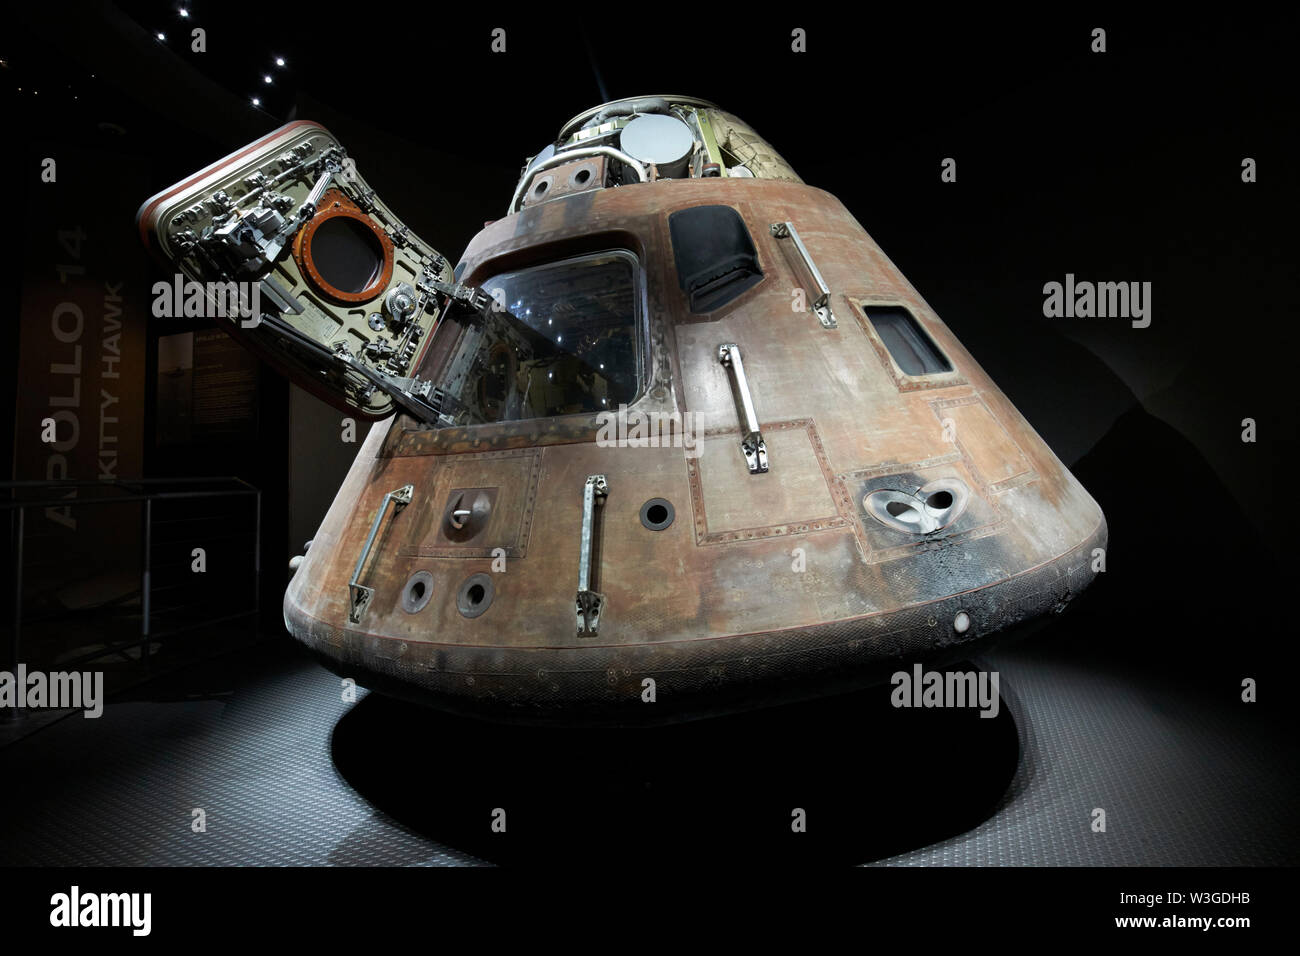 Apollo 14 crew capsule in the treasures gallery in the Apollo/Saturn 5 center Kennedy Space Center Florida USA on the week of the 50th anniversary of - Stock Image